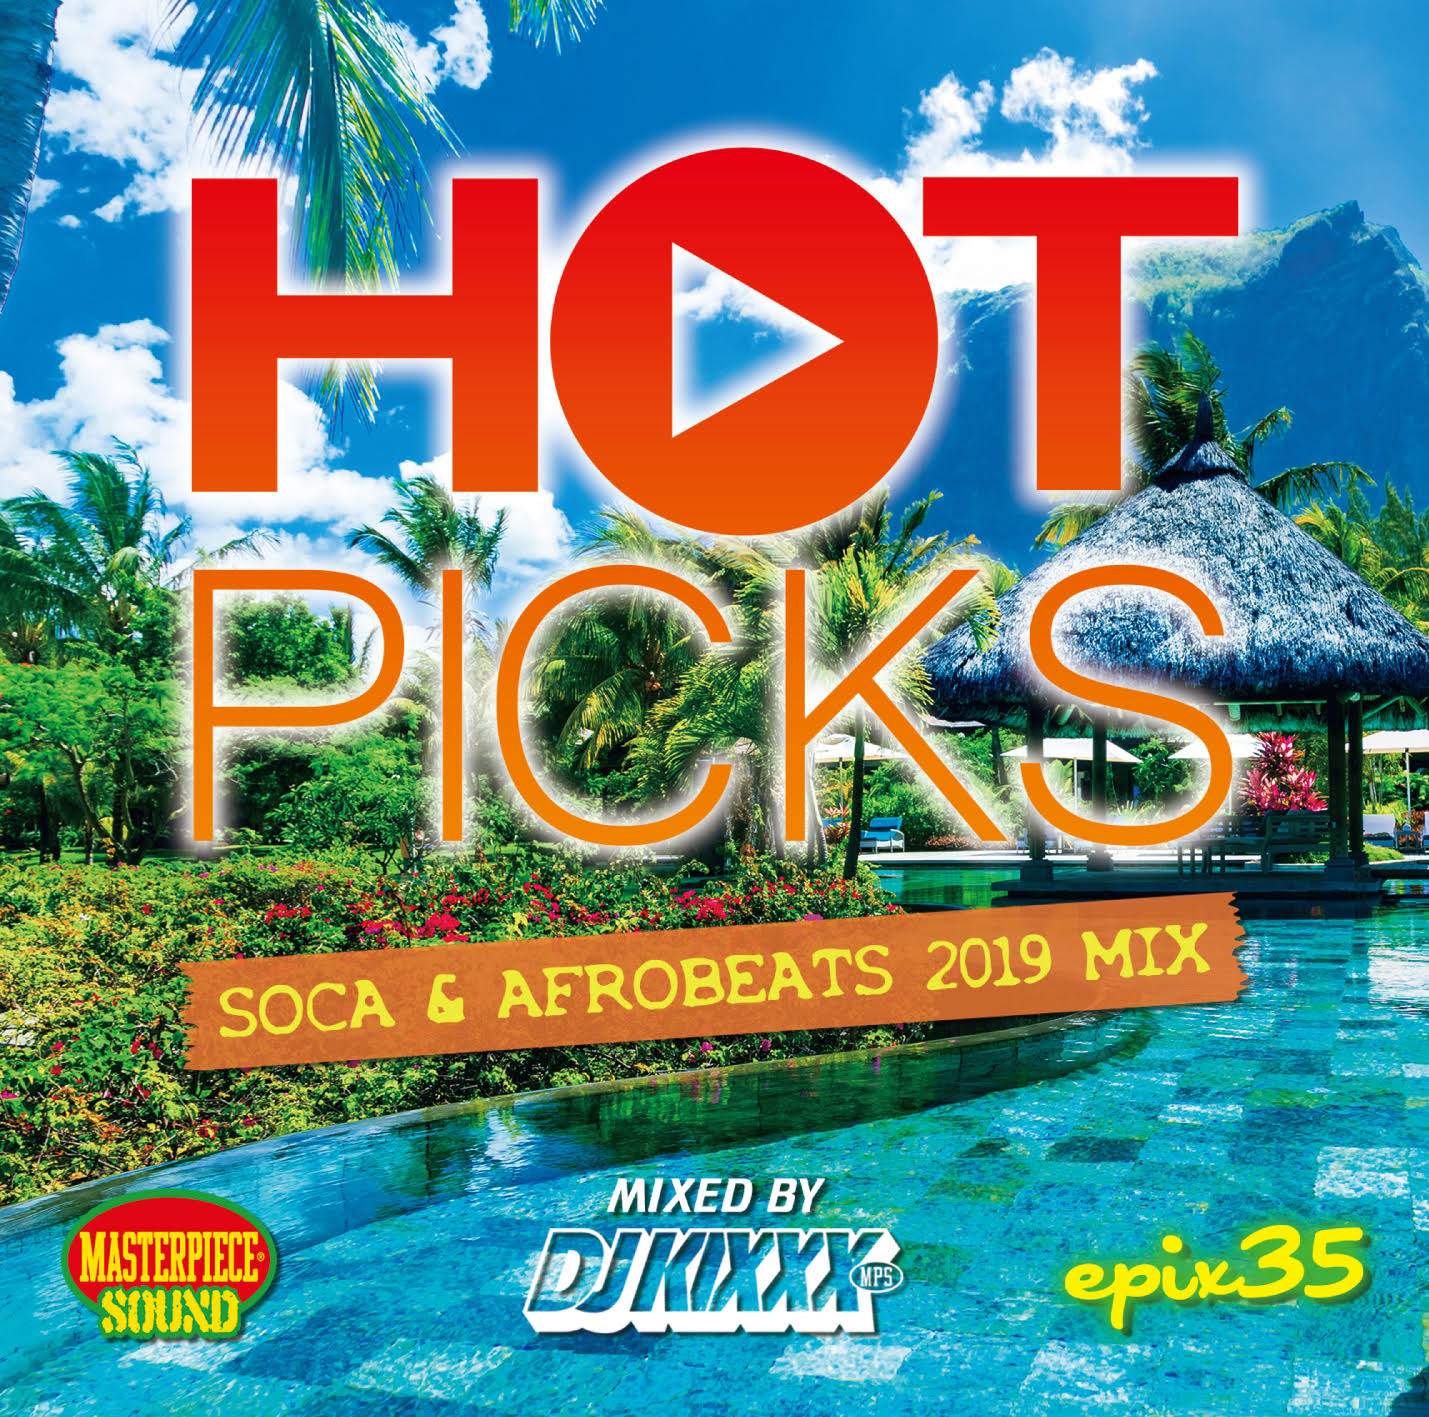 DJ KIXXX from MASTERPIECE SOUND / HOT PICKS -SOCA & AFROBEATS 2019 MIX-